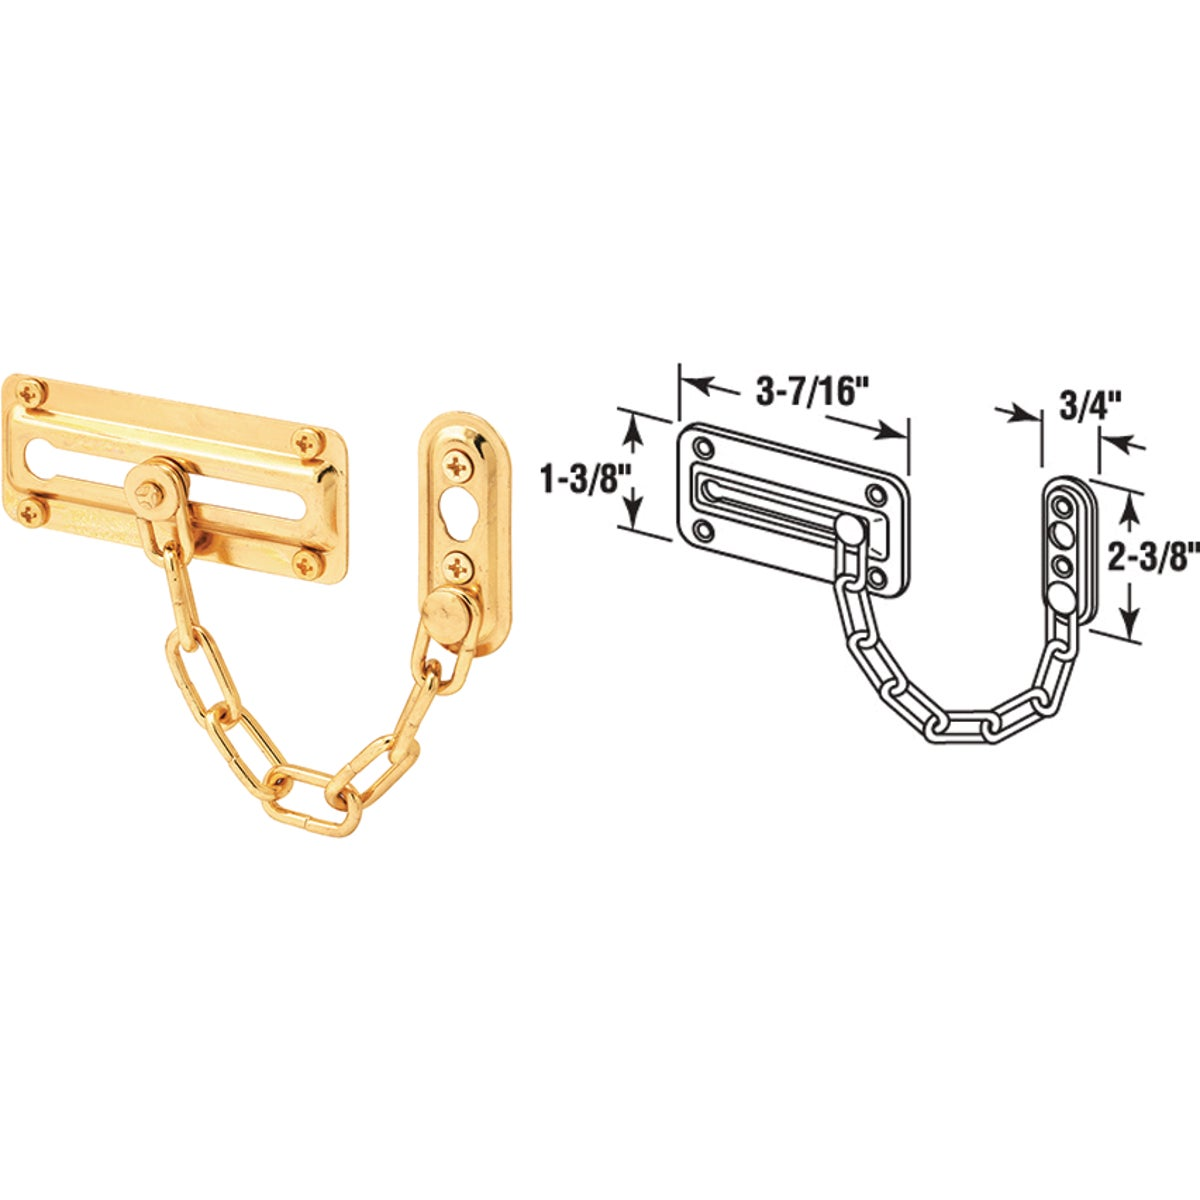 BRS CHAIN DOOR GUARD - U 9905 by Prime Line Products